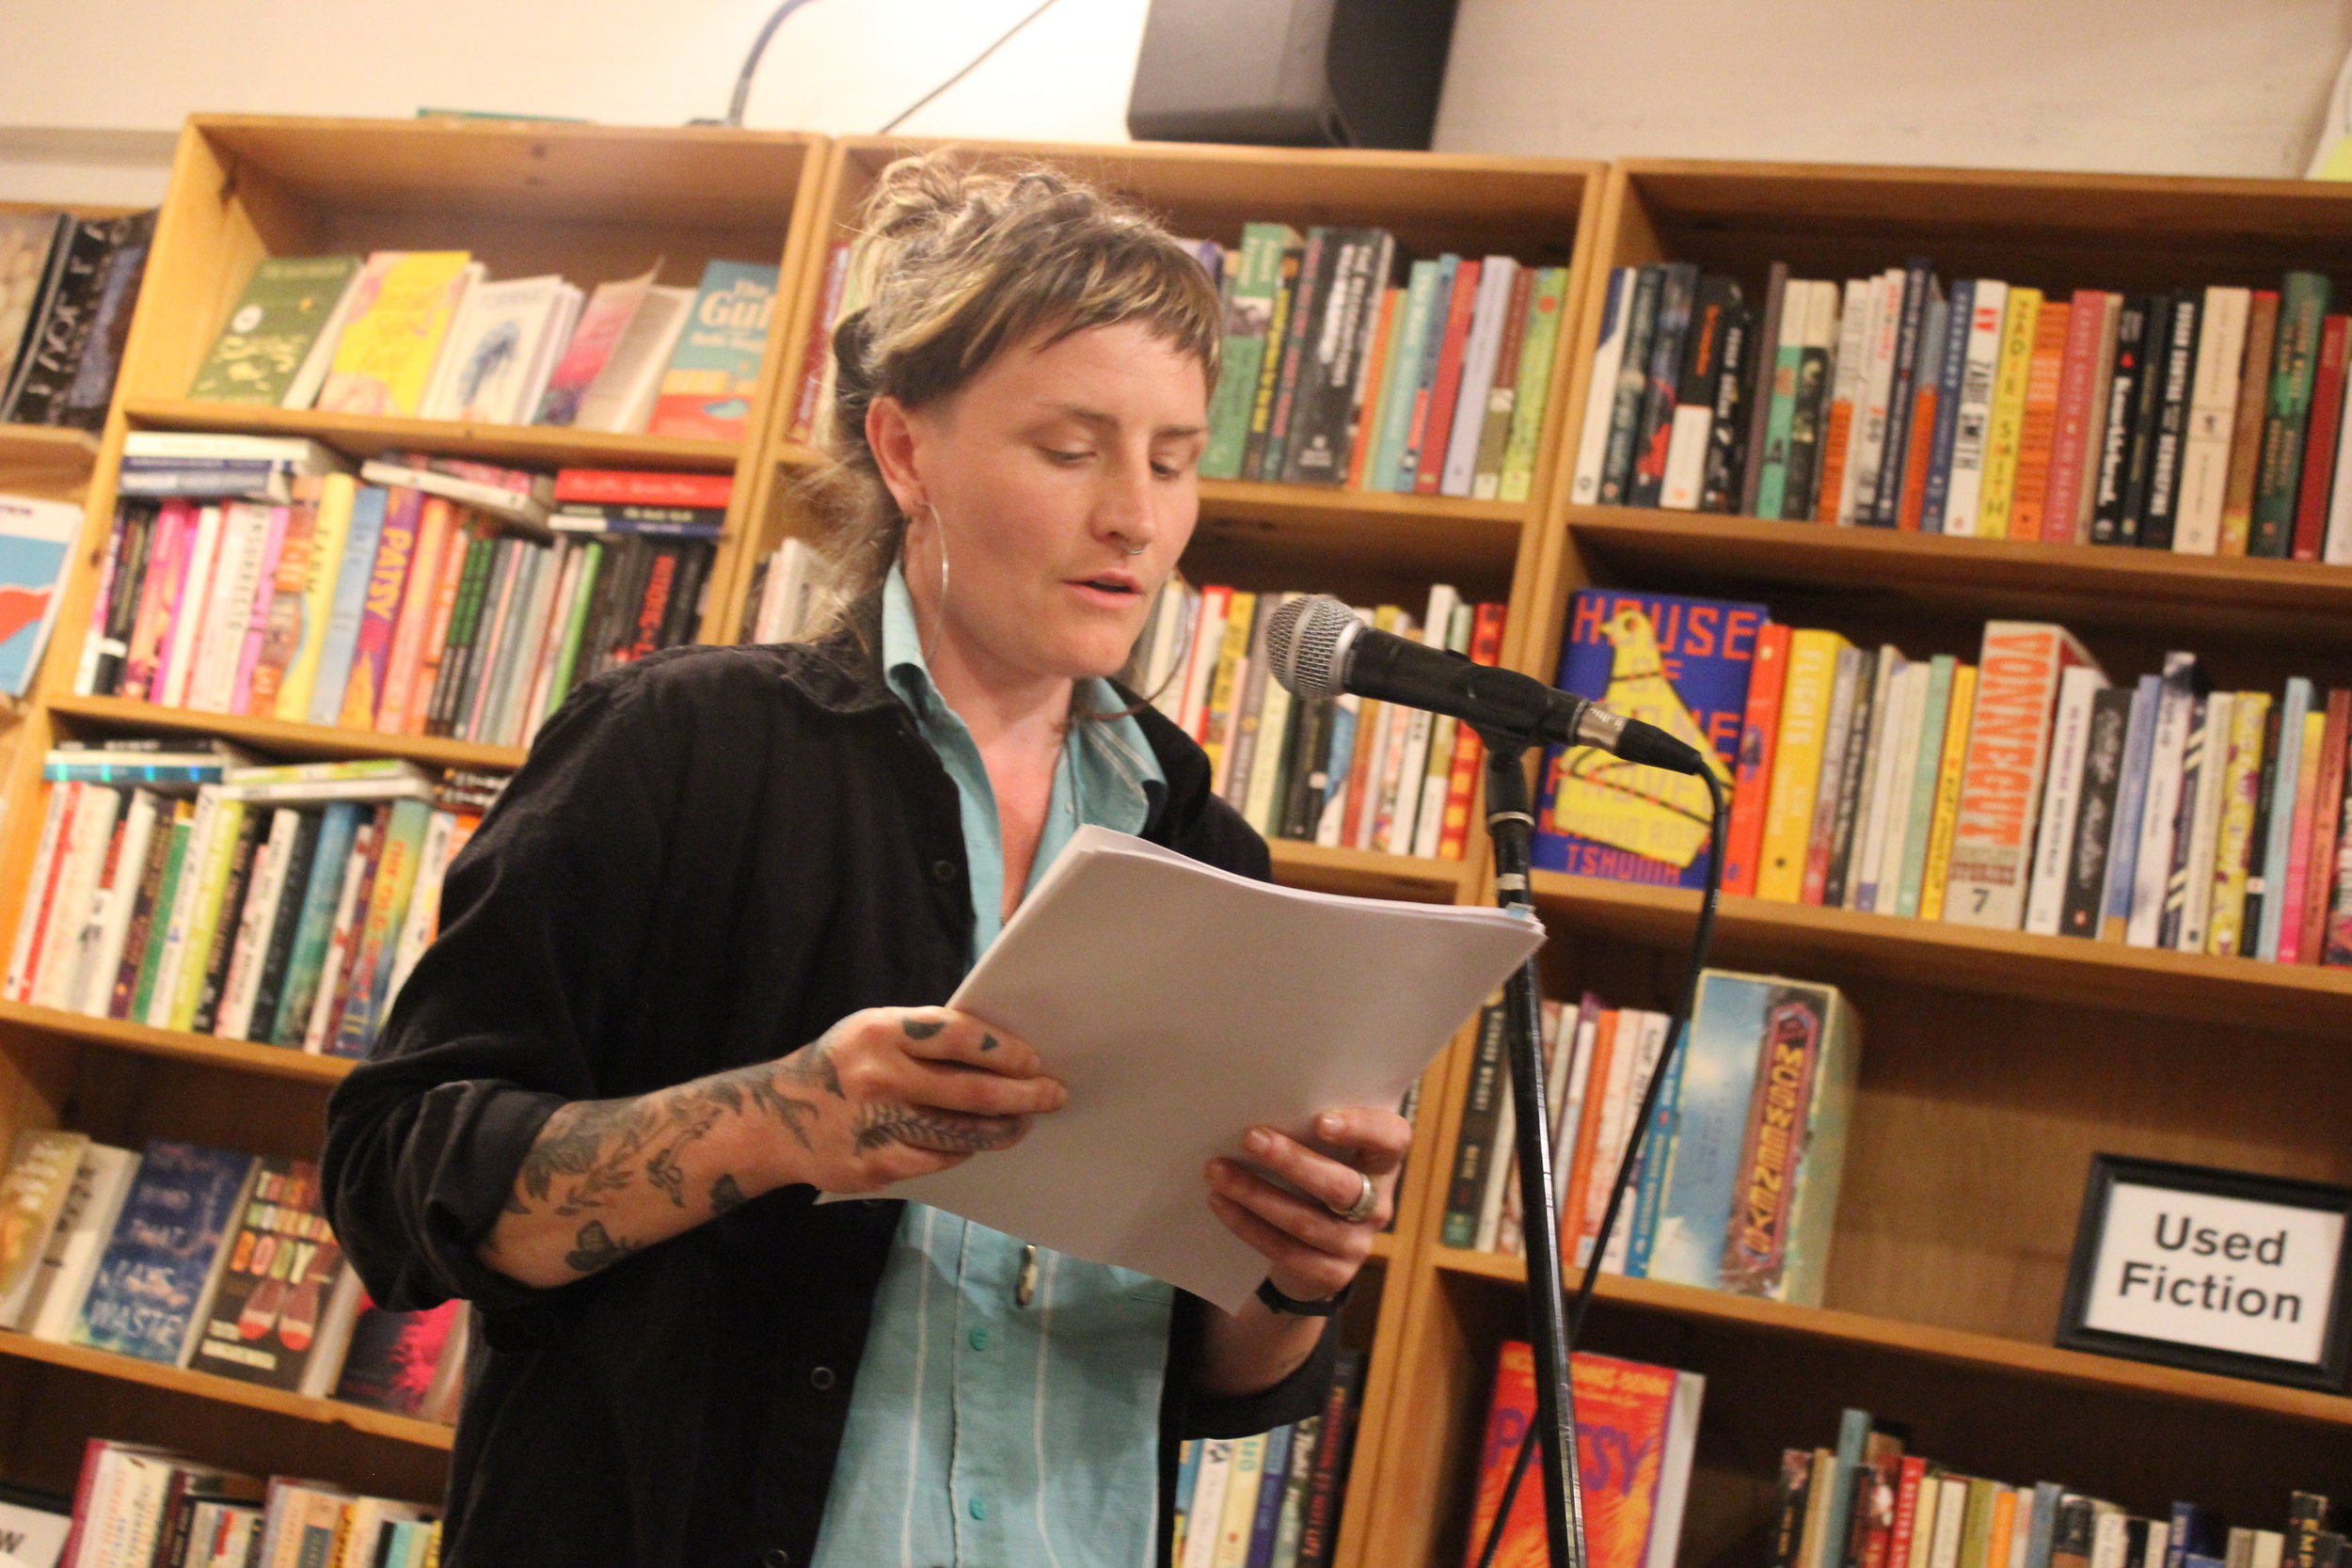 Tessa Micaela Landreau-Grasmuck reads poetry at Wolfman Books in downtown Oakland at a reading hosted by Jacob Kahn on 8/19/19